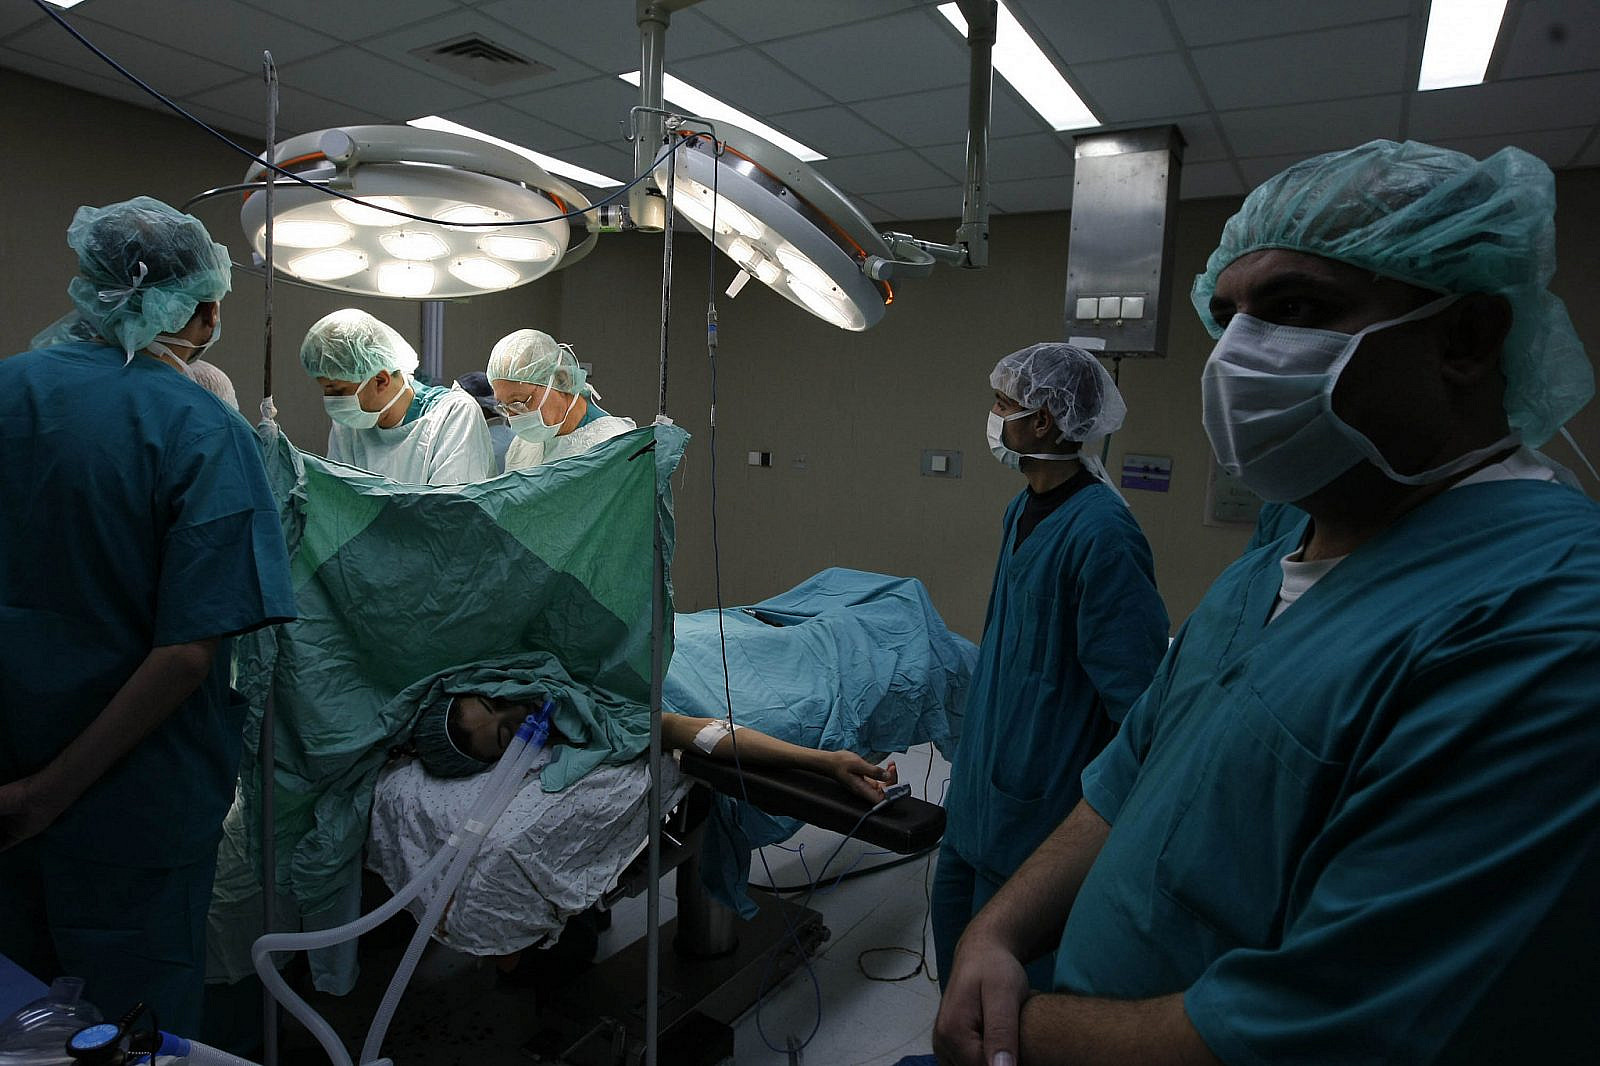 French surgeon Christopher Bulstrode operates on a Palestinian patient as he trains Palestinian doctors in surgical procedures at the Nasser hospital in Khan Younis in the southern Gaza Strip, December 15, 2009. (Abed Rahim Khatib/Flash90)